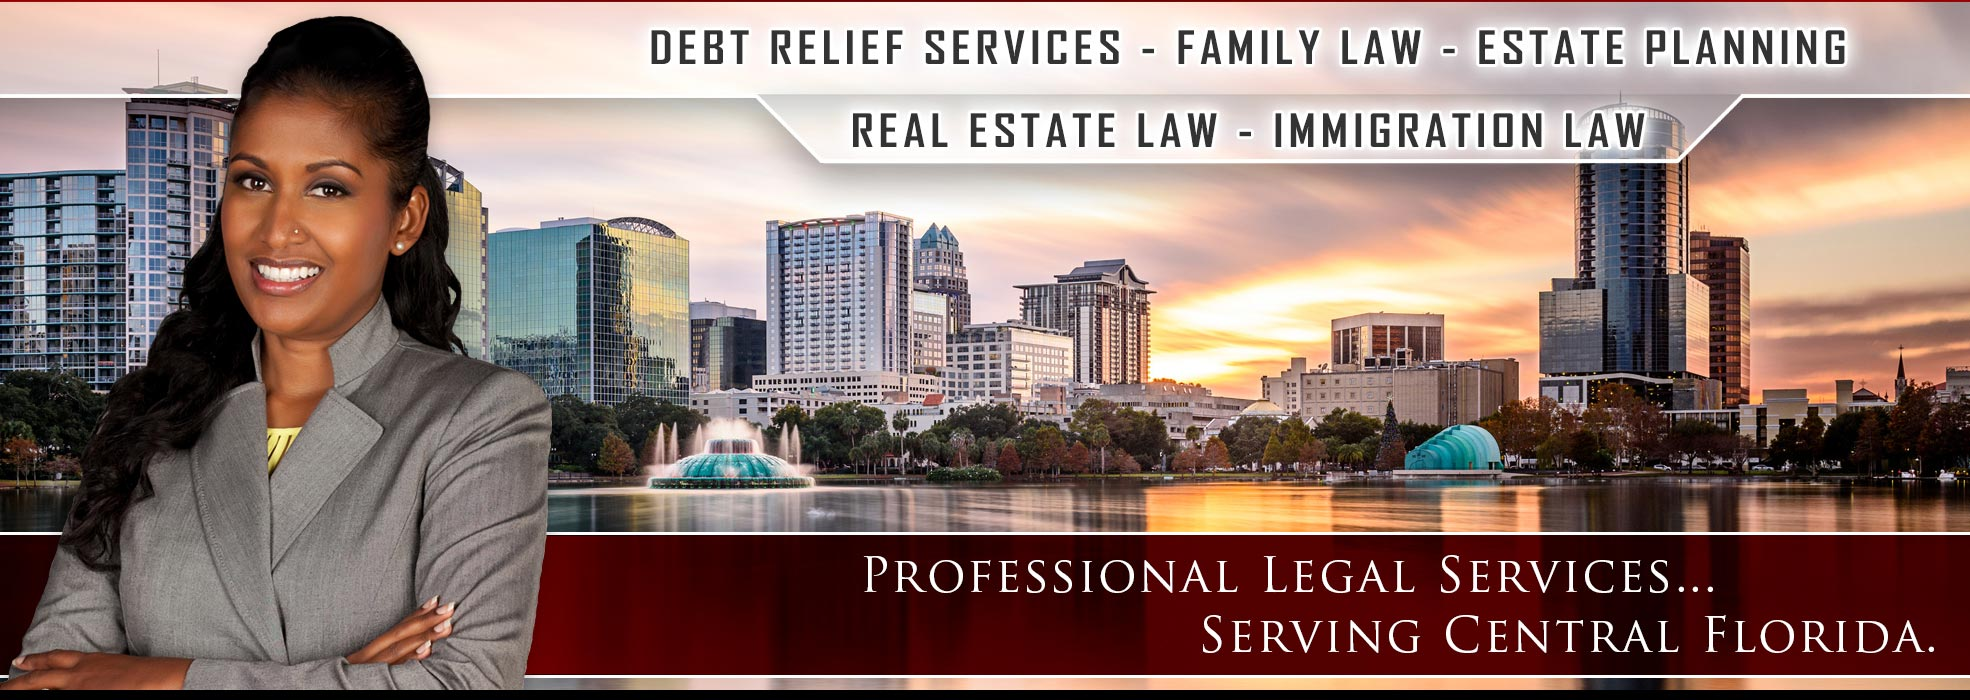 Orlando and Central Florida attorney, Camille Sebreth